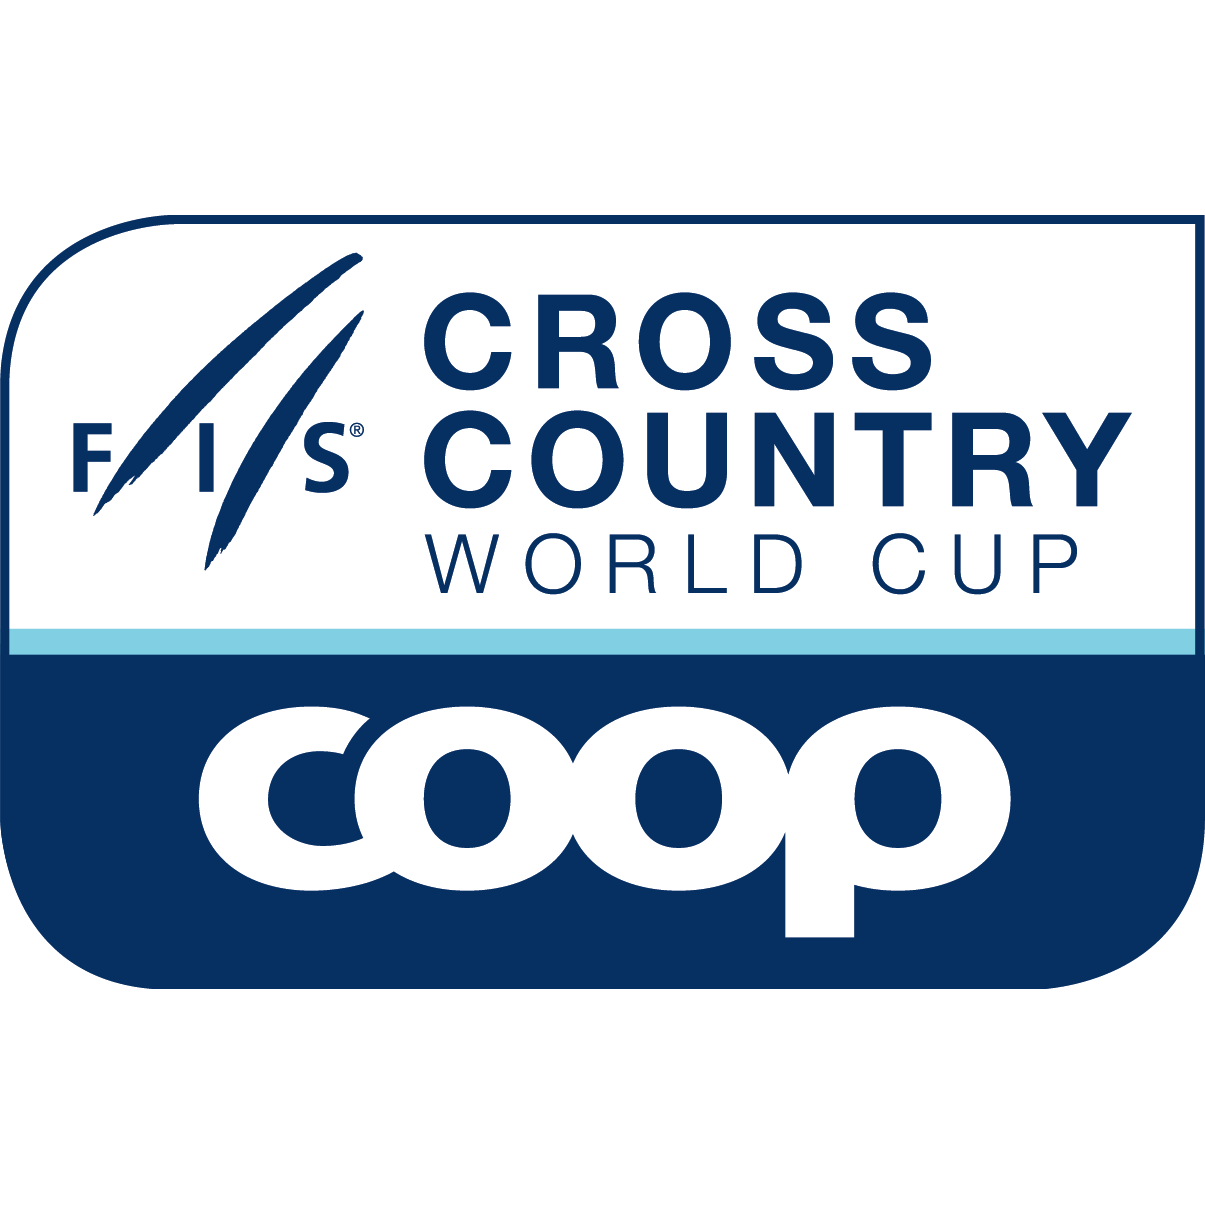 2017 FIS Cross Country World Cup - Tour de Ski